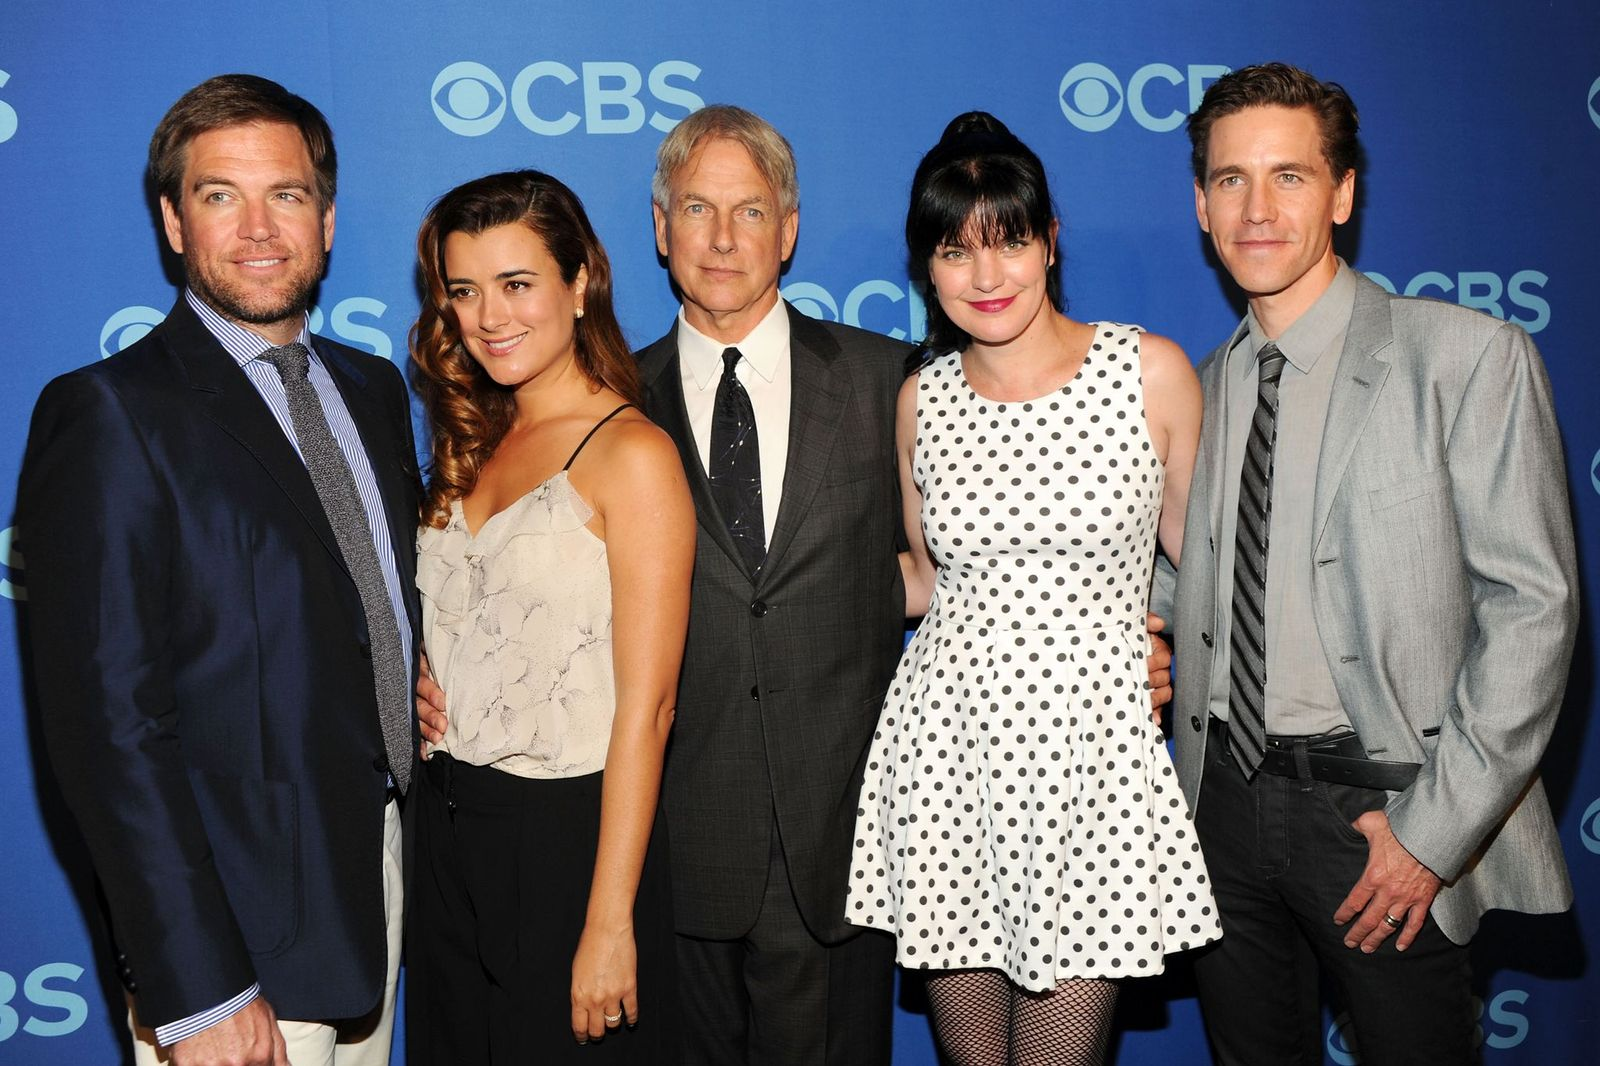 Cast of NCIS Michael Weatherly, Cote de Pable, Mark Harmon, Pauley Perrette and Brian Dietzen at CBS 2013 Upfront Presentation at The Tent at Lincoln Center on May 15, 2013 in New York City | Photo: Getty Images